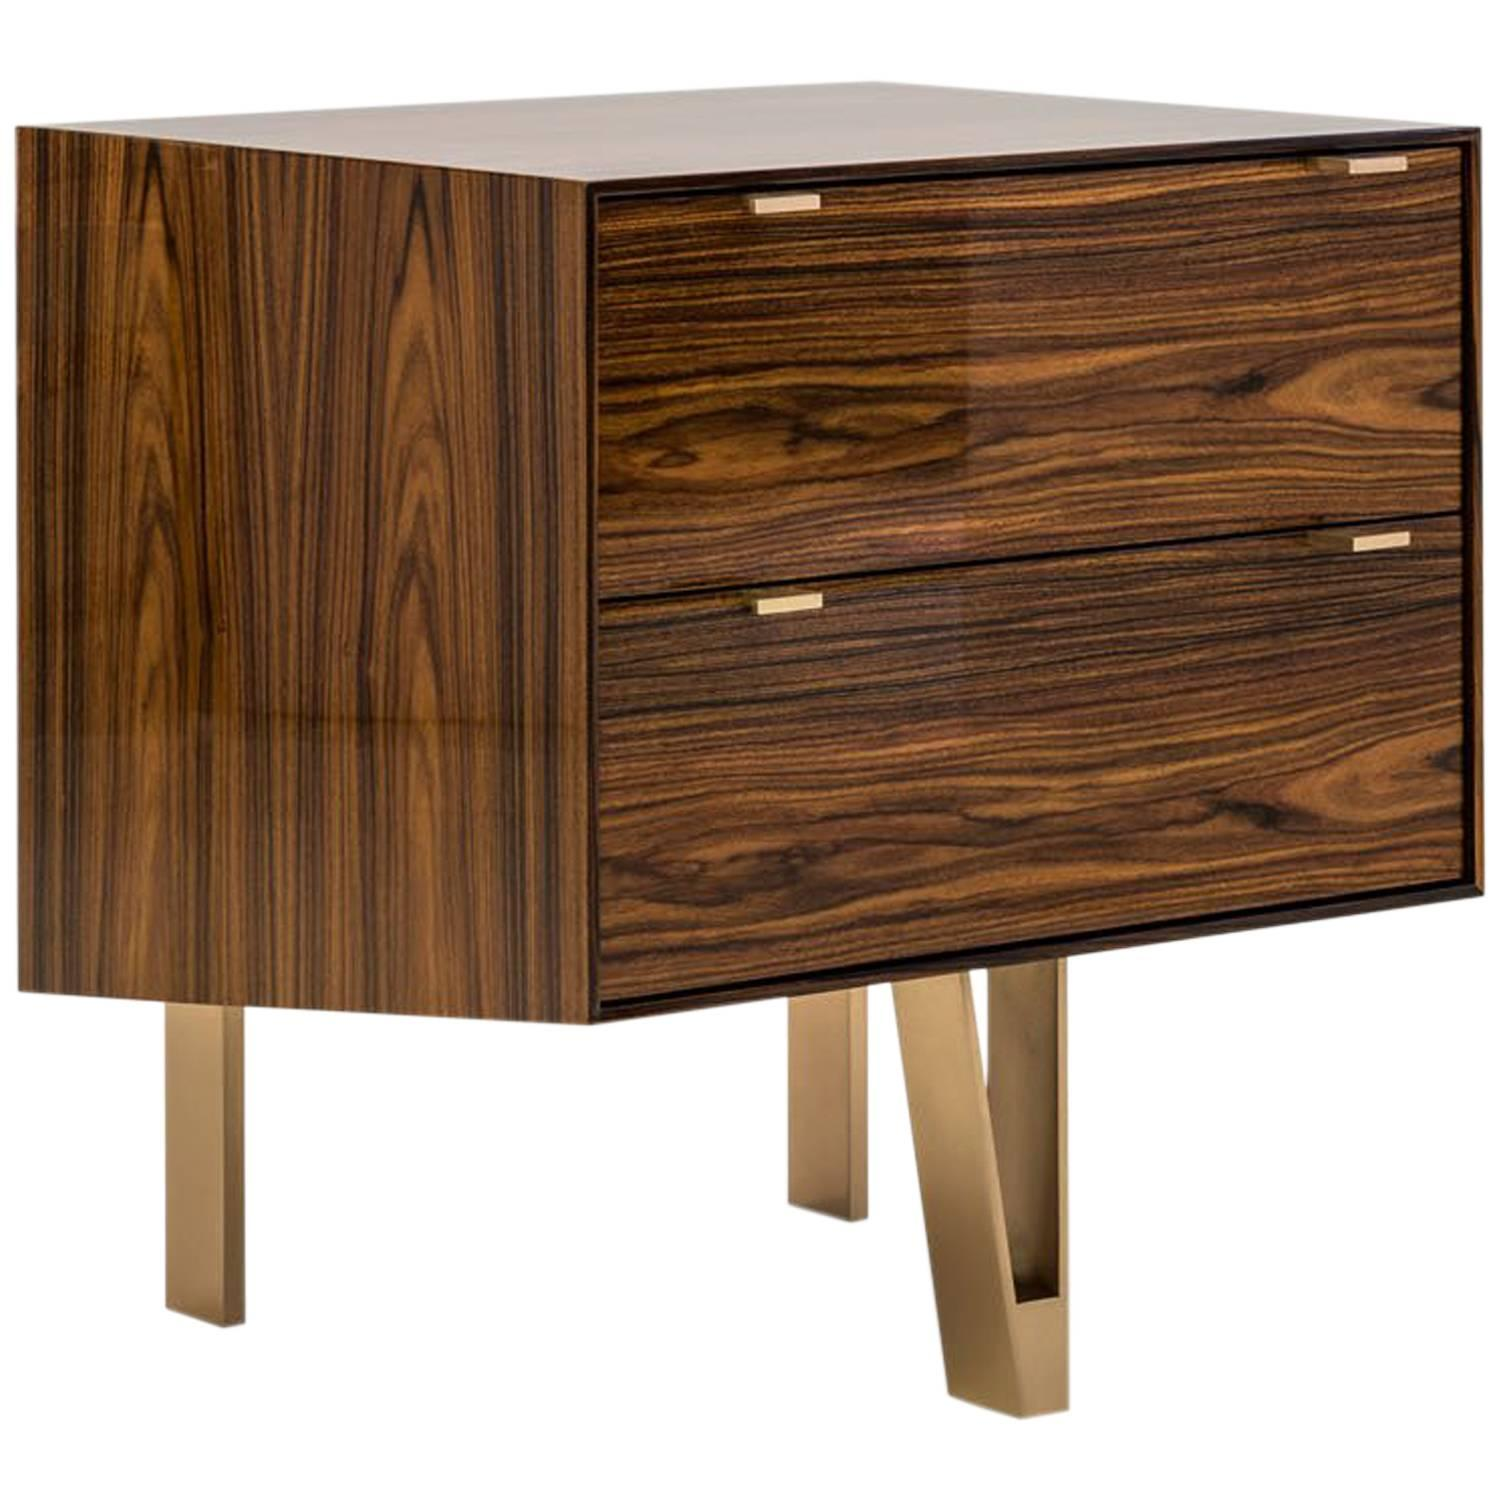 Saxton Cabinet / End Table in Lacquered Santos Veneer and Silicon Bronze Legs